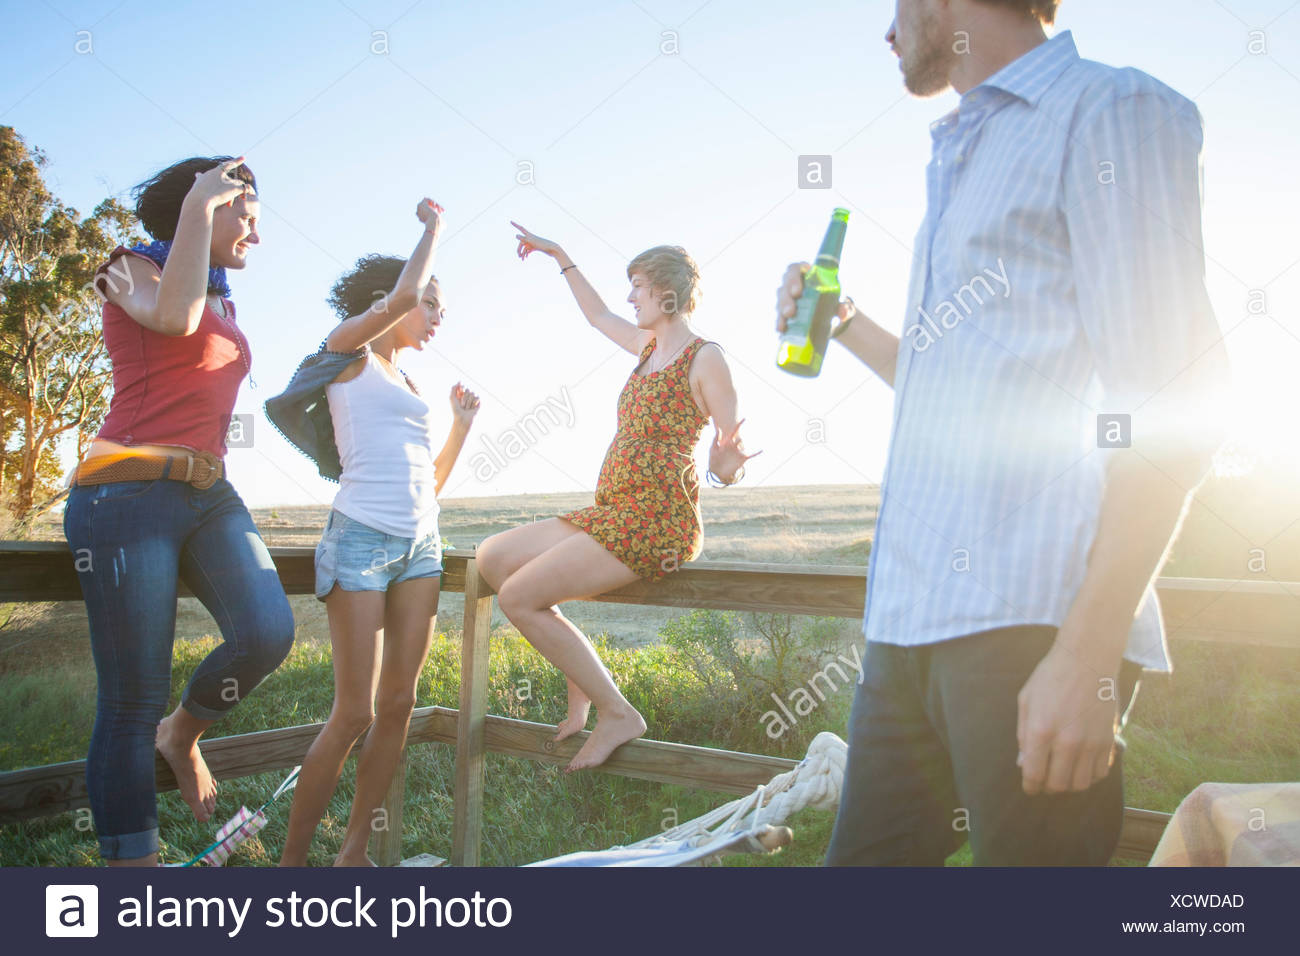 Young man watching friends dance on balcony - Stock Image